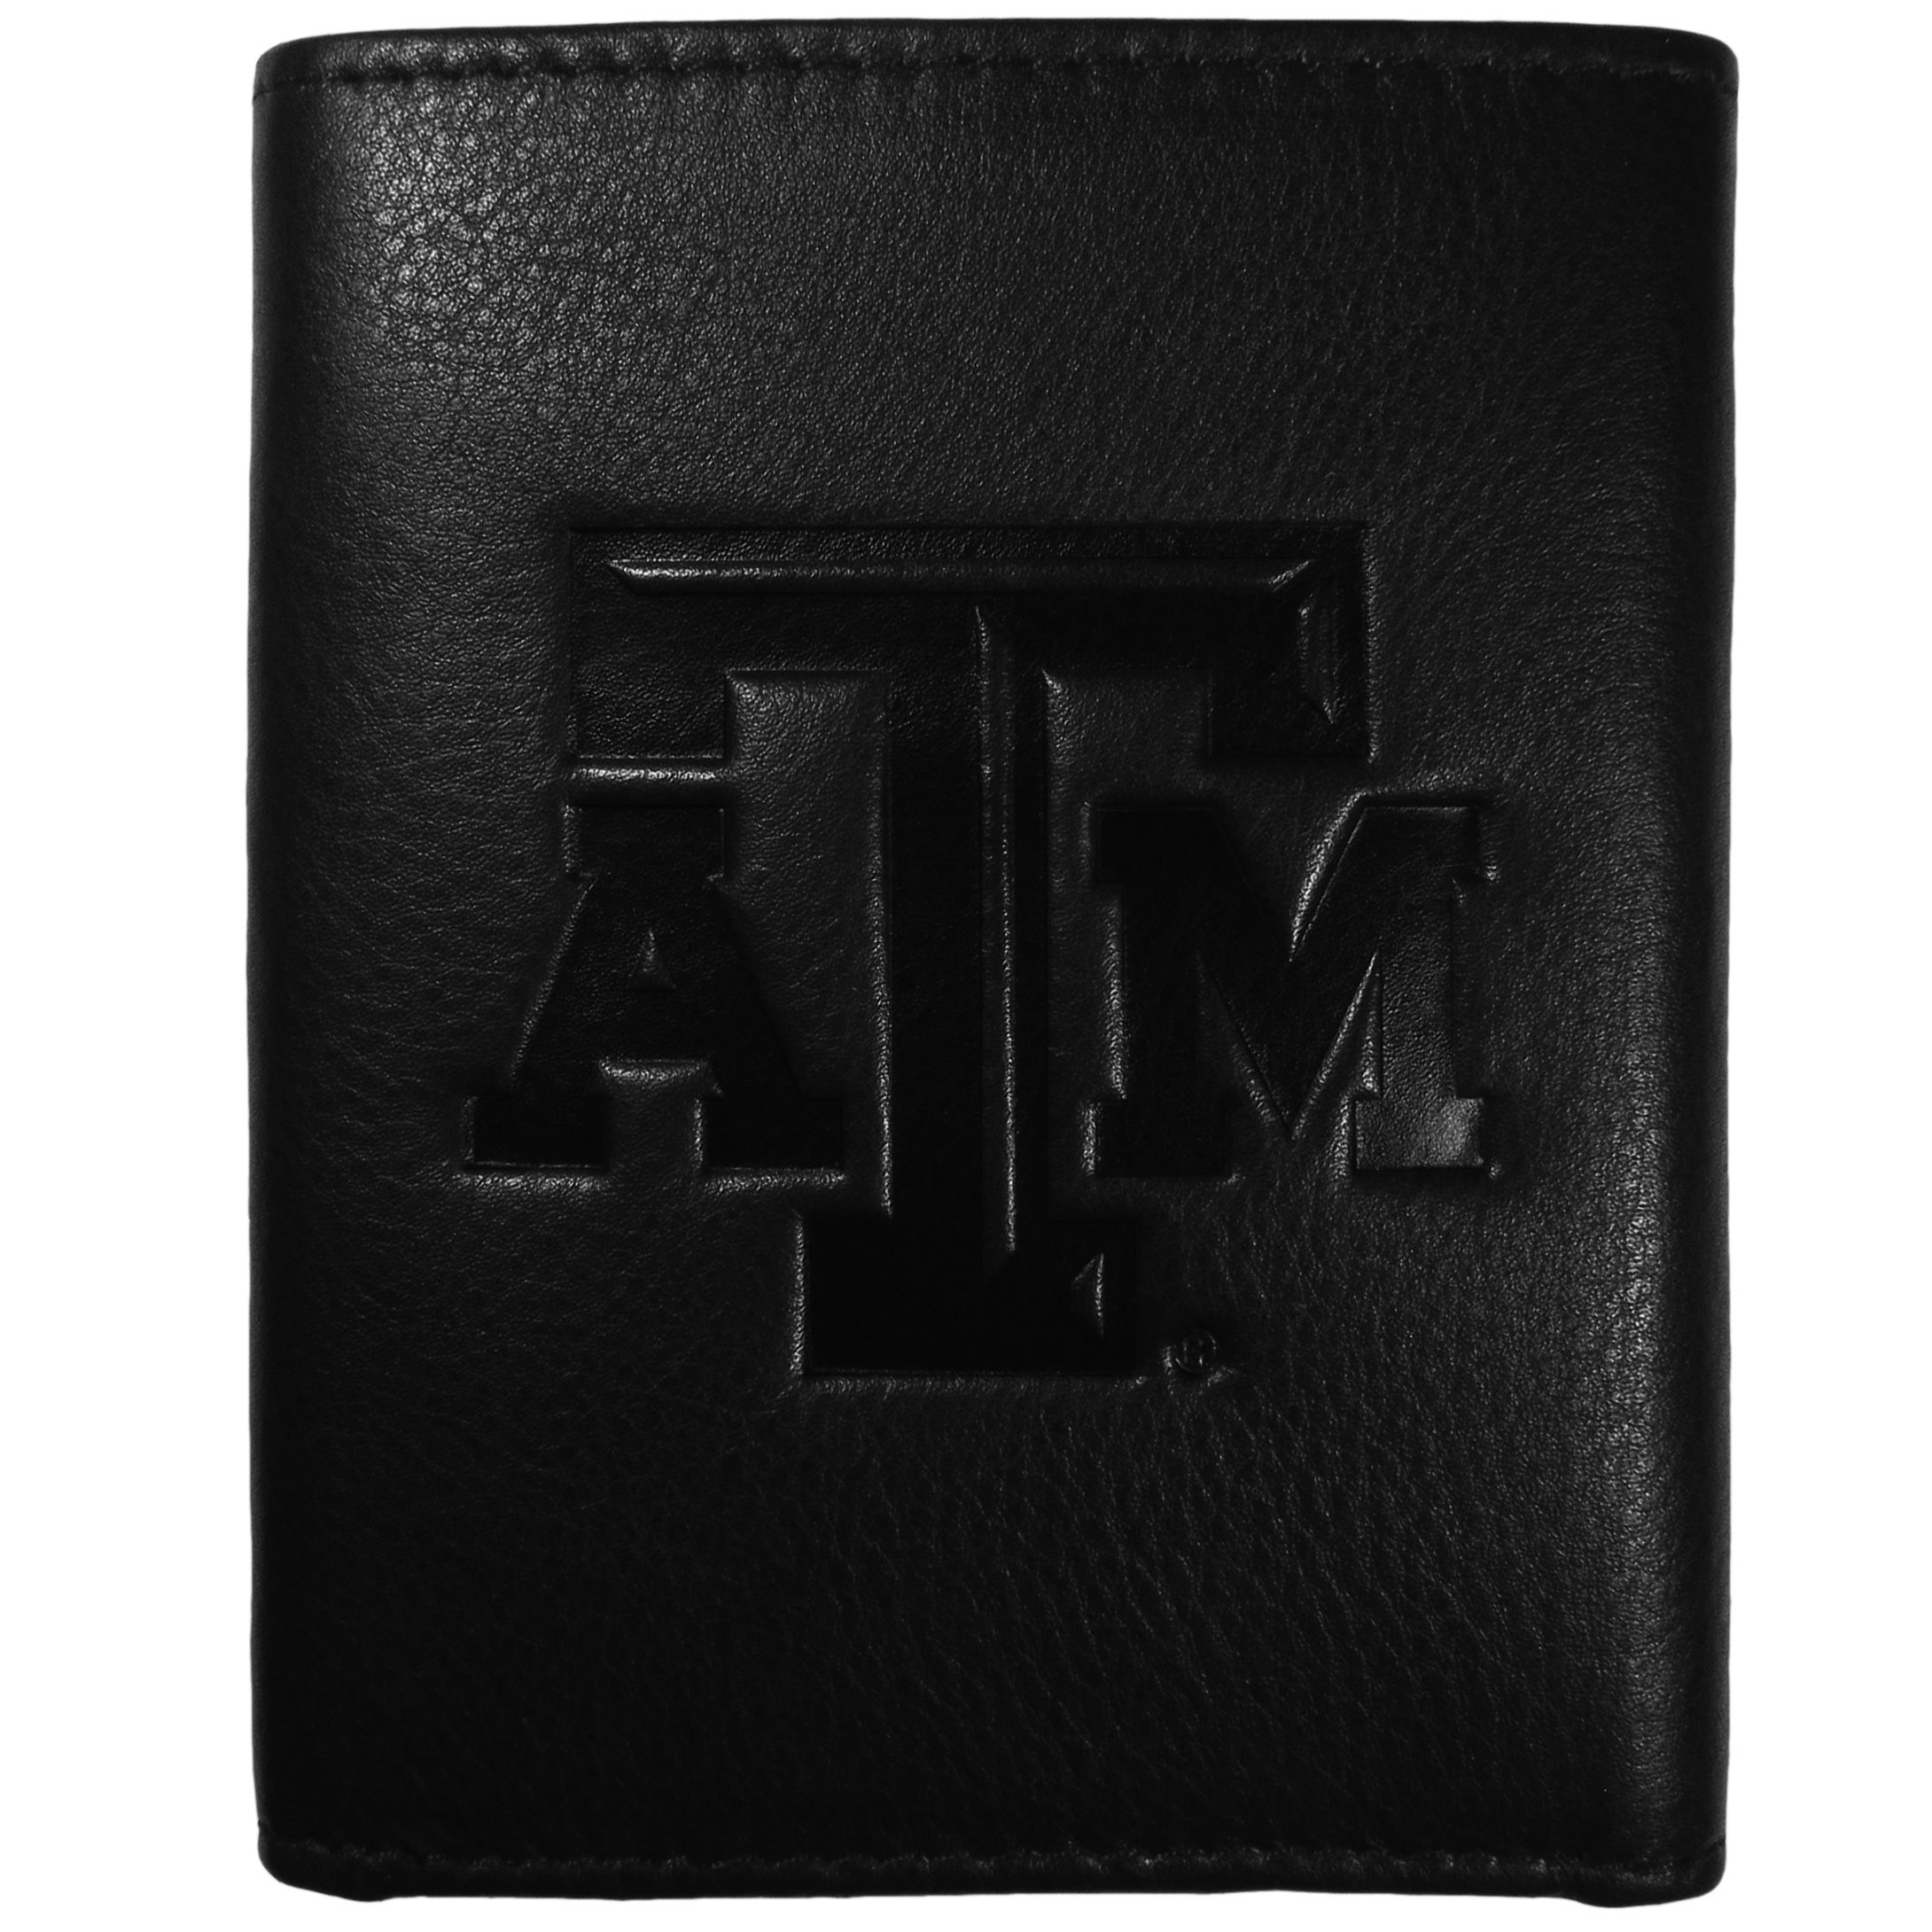 Texas A and M Aggies Embossed Leather Tri-fold Wallet - This stylish leather wallet is made of high quality leather with a supple feel and classic look. The front of the tri-fold style wallet has a deeply embossed Texas A & M Aggies logo. The billfold is packed with features that will allow to keep organized, lots of credit card slots, windowed ID slot, large pockets for bills and a removable sleeve with extra slots for even more storage. This is a must-have men's fashion accessory that would make any fan very proud to own.